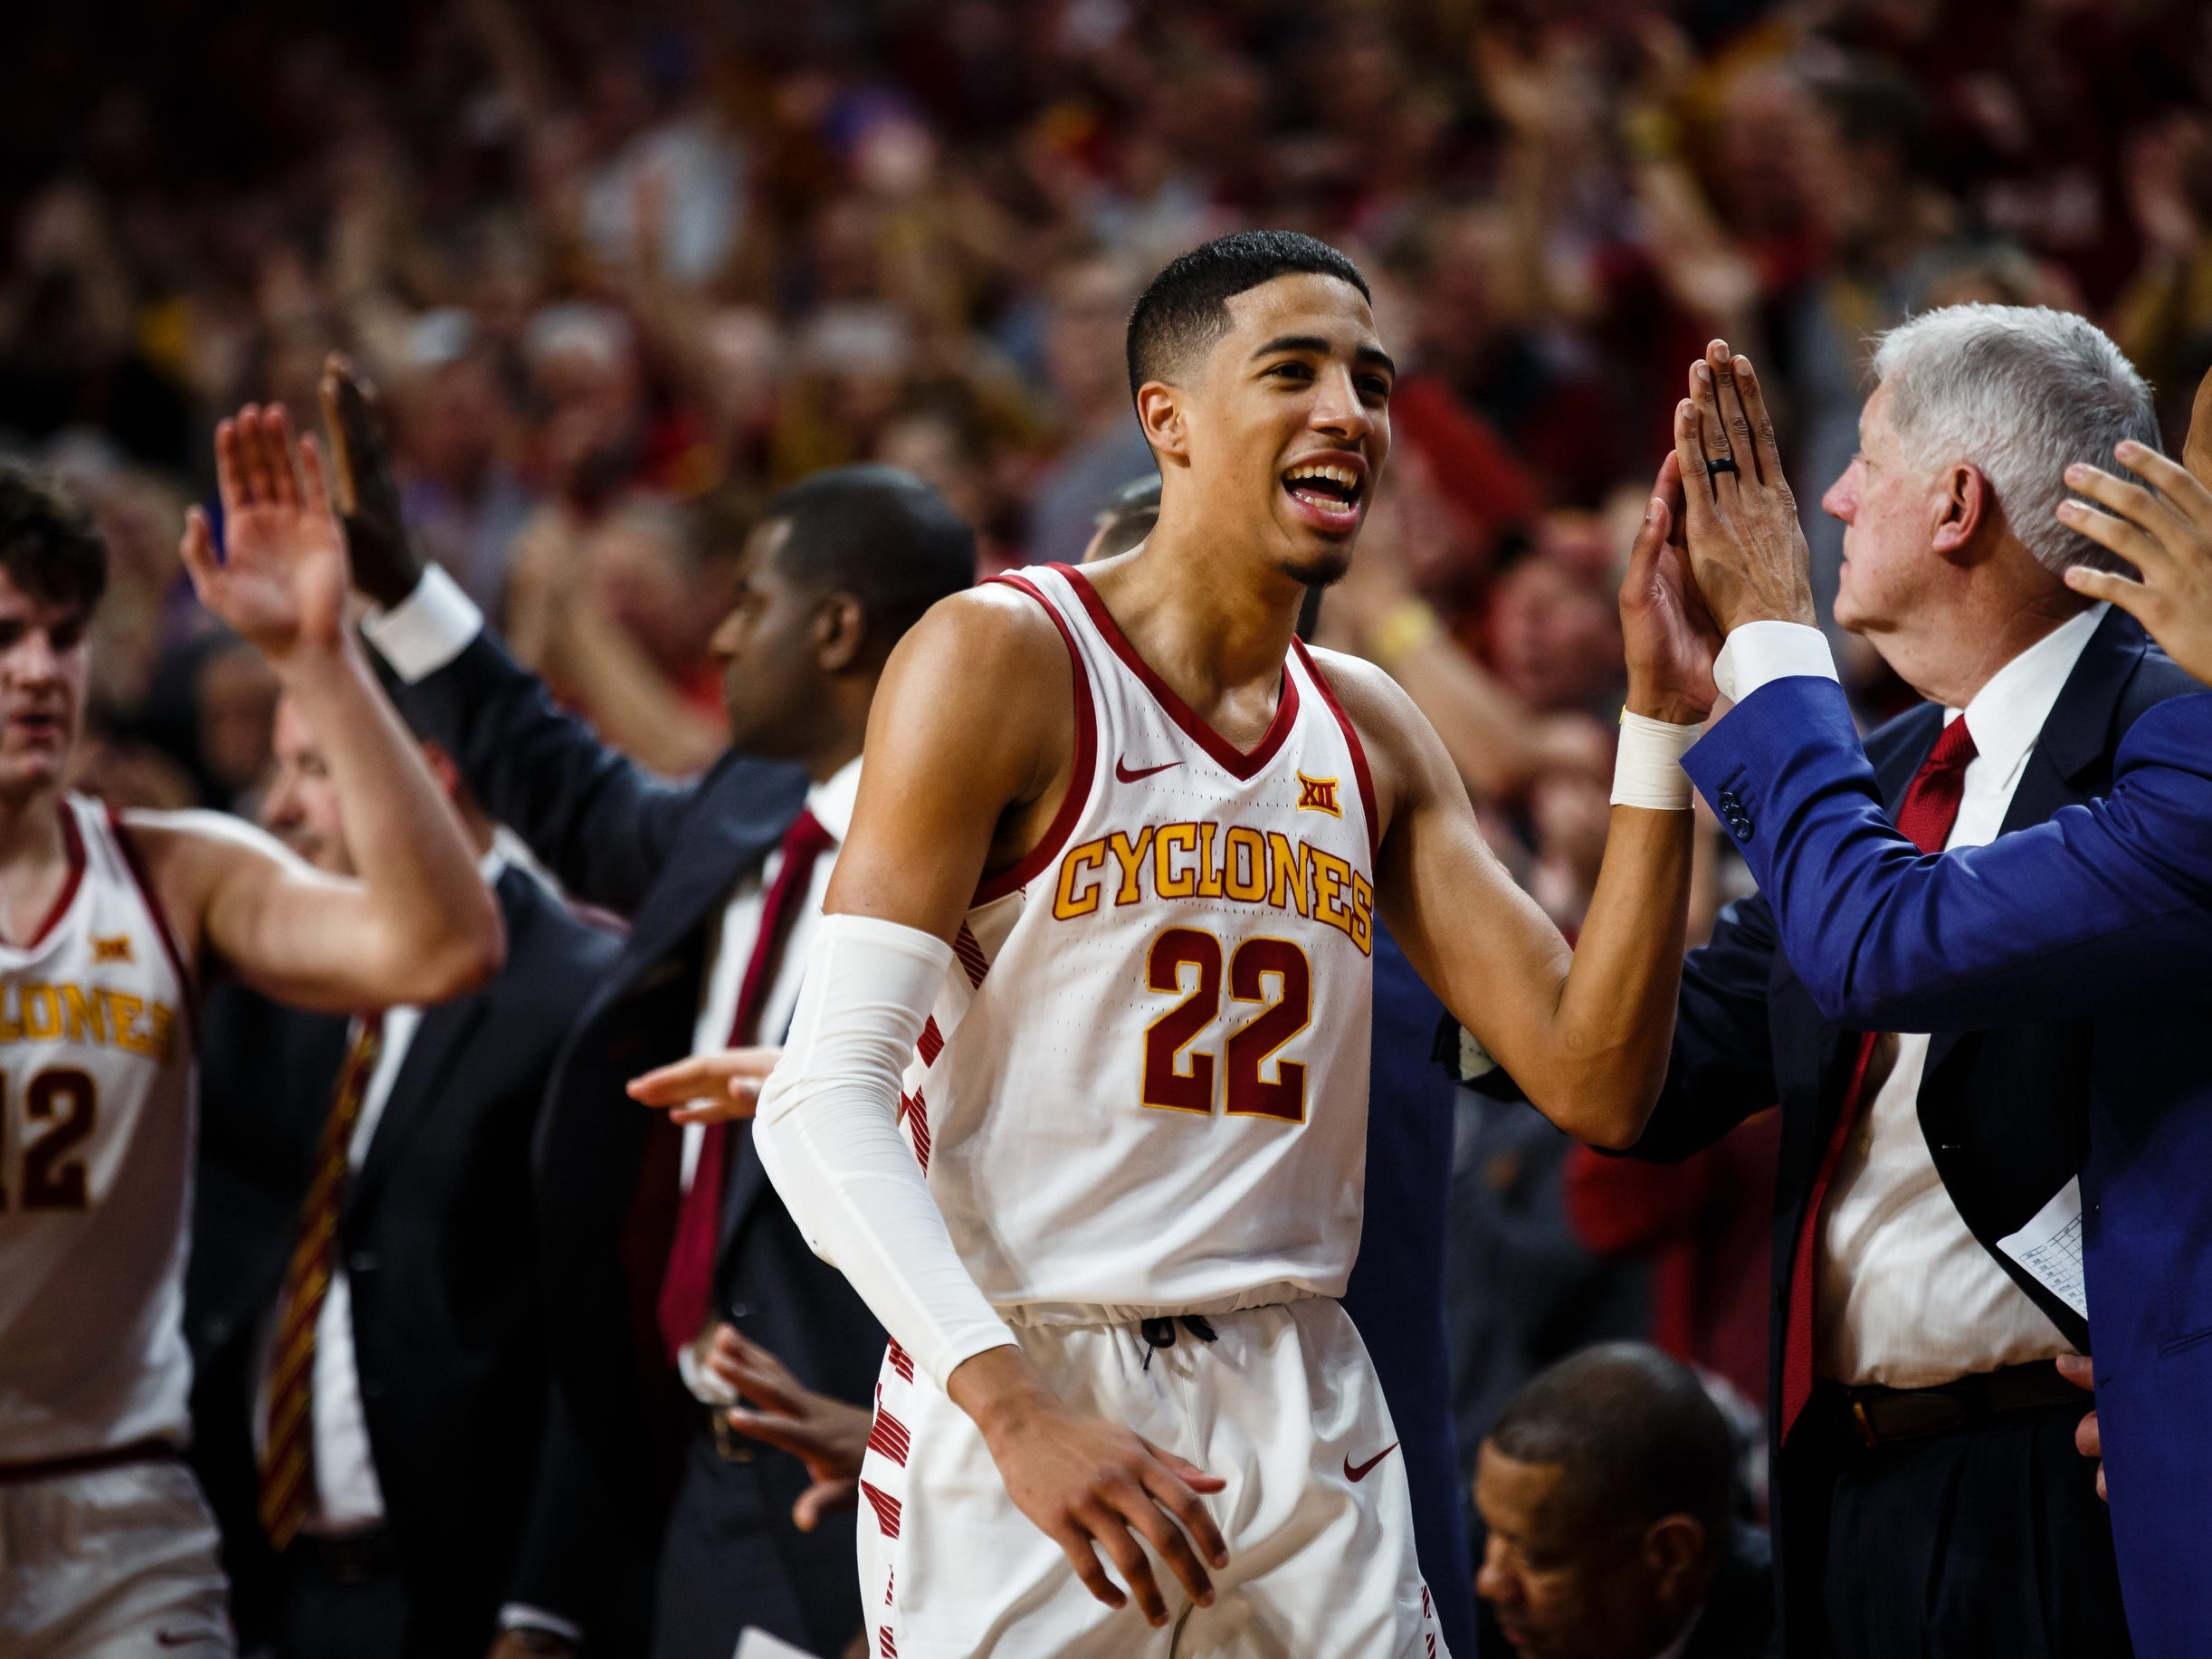 Iowa State's Tyrese Haliburton (22) gets high-fives as he returns to the bench during the second half of their basketball game on Saturday, Jan. 5, 2019, in Ames. Iowa State would go on to beat Kansas 77-60.